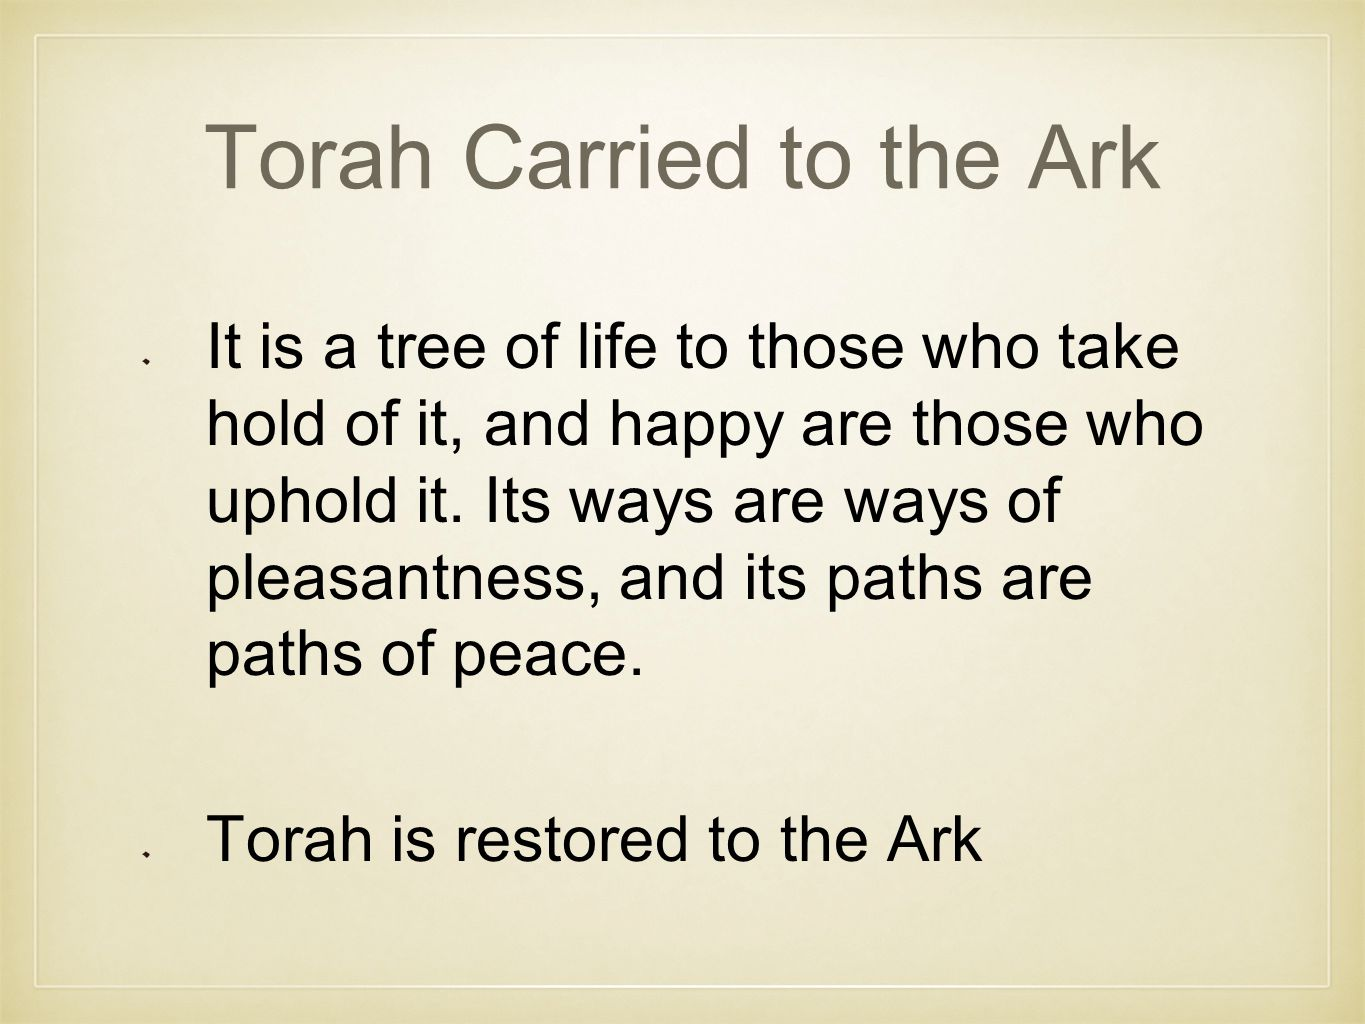 Torah Carried to the Ark It is a tree of life to those who take hold of it, and happy are those who uphold it.